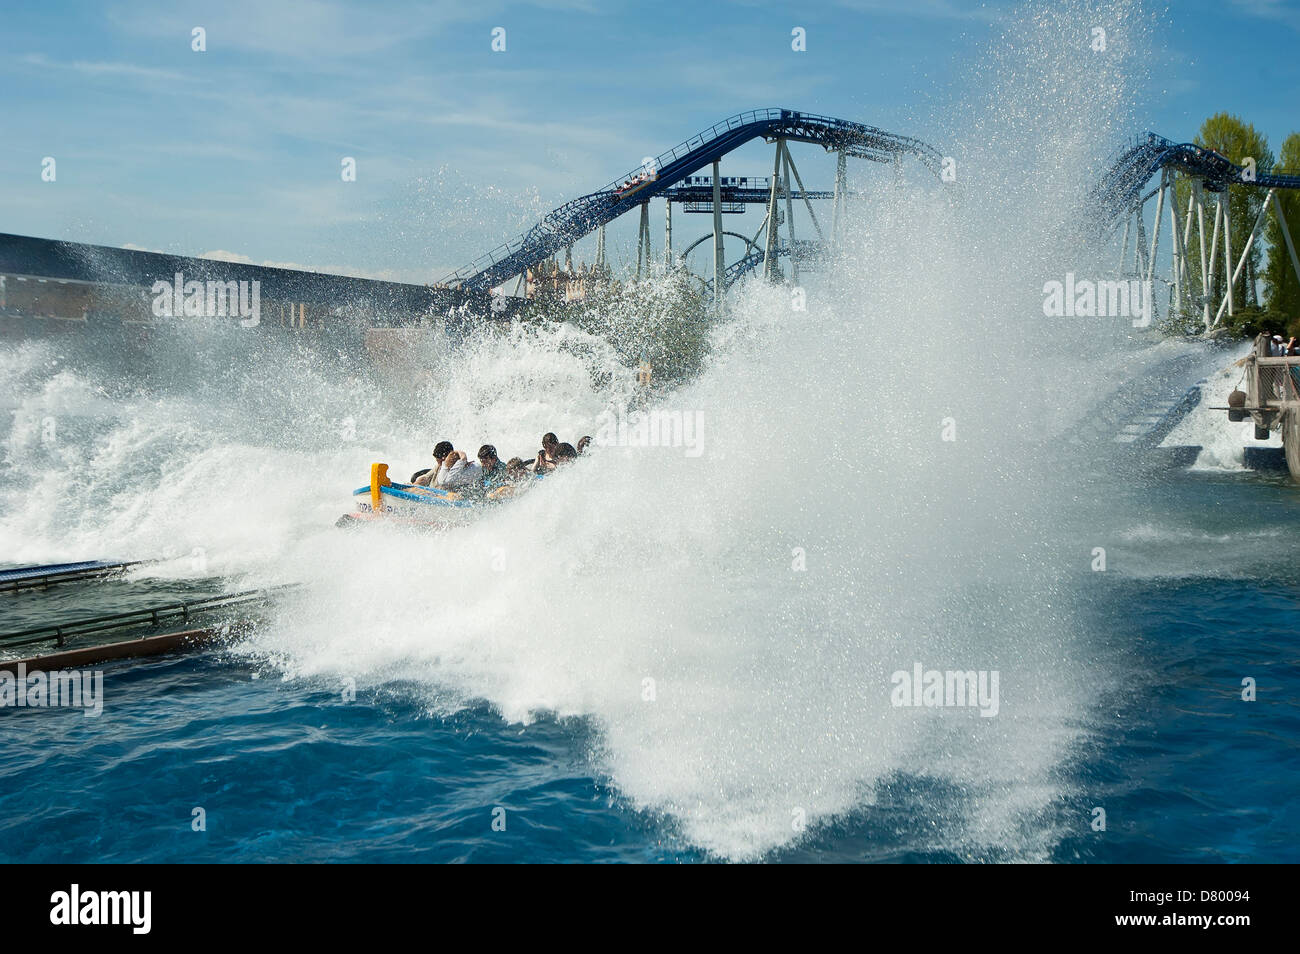 Europa park Tourist attraction in Germany - Stock Image